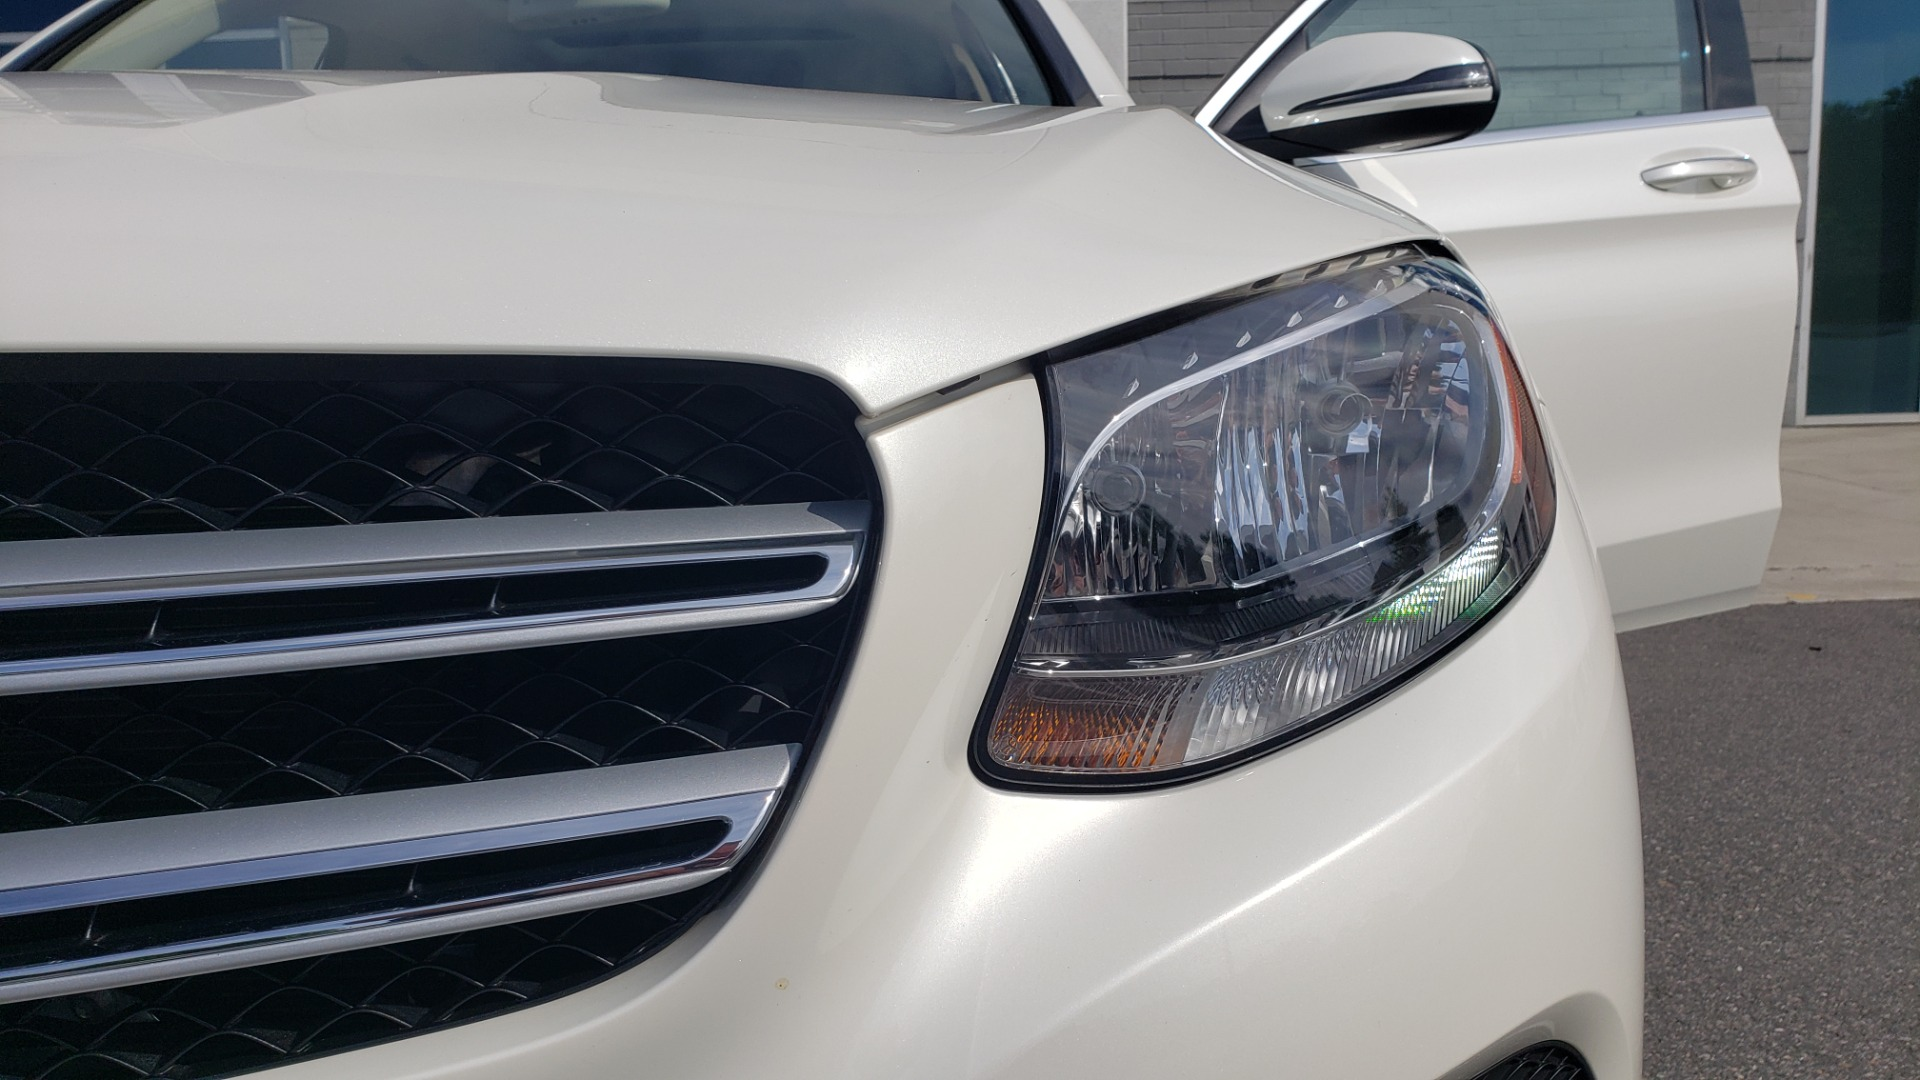 Used 2018 Mercedes-Benz GLC 300 4MATIC / PREM PKG / PANO-ROOF / APPLE / REARVIEW for sale $33,397 at Formula Imports in Charlotte NC 28227 24